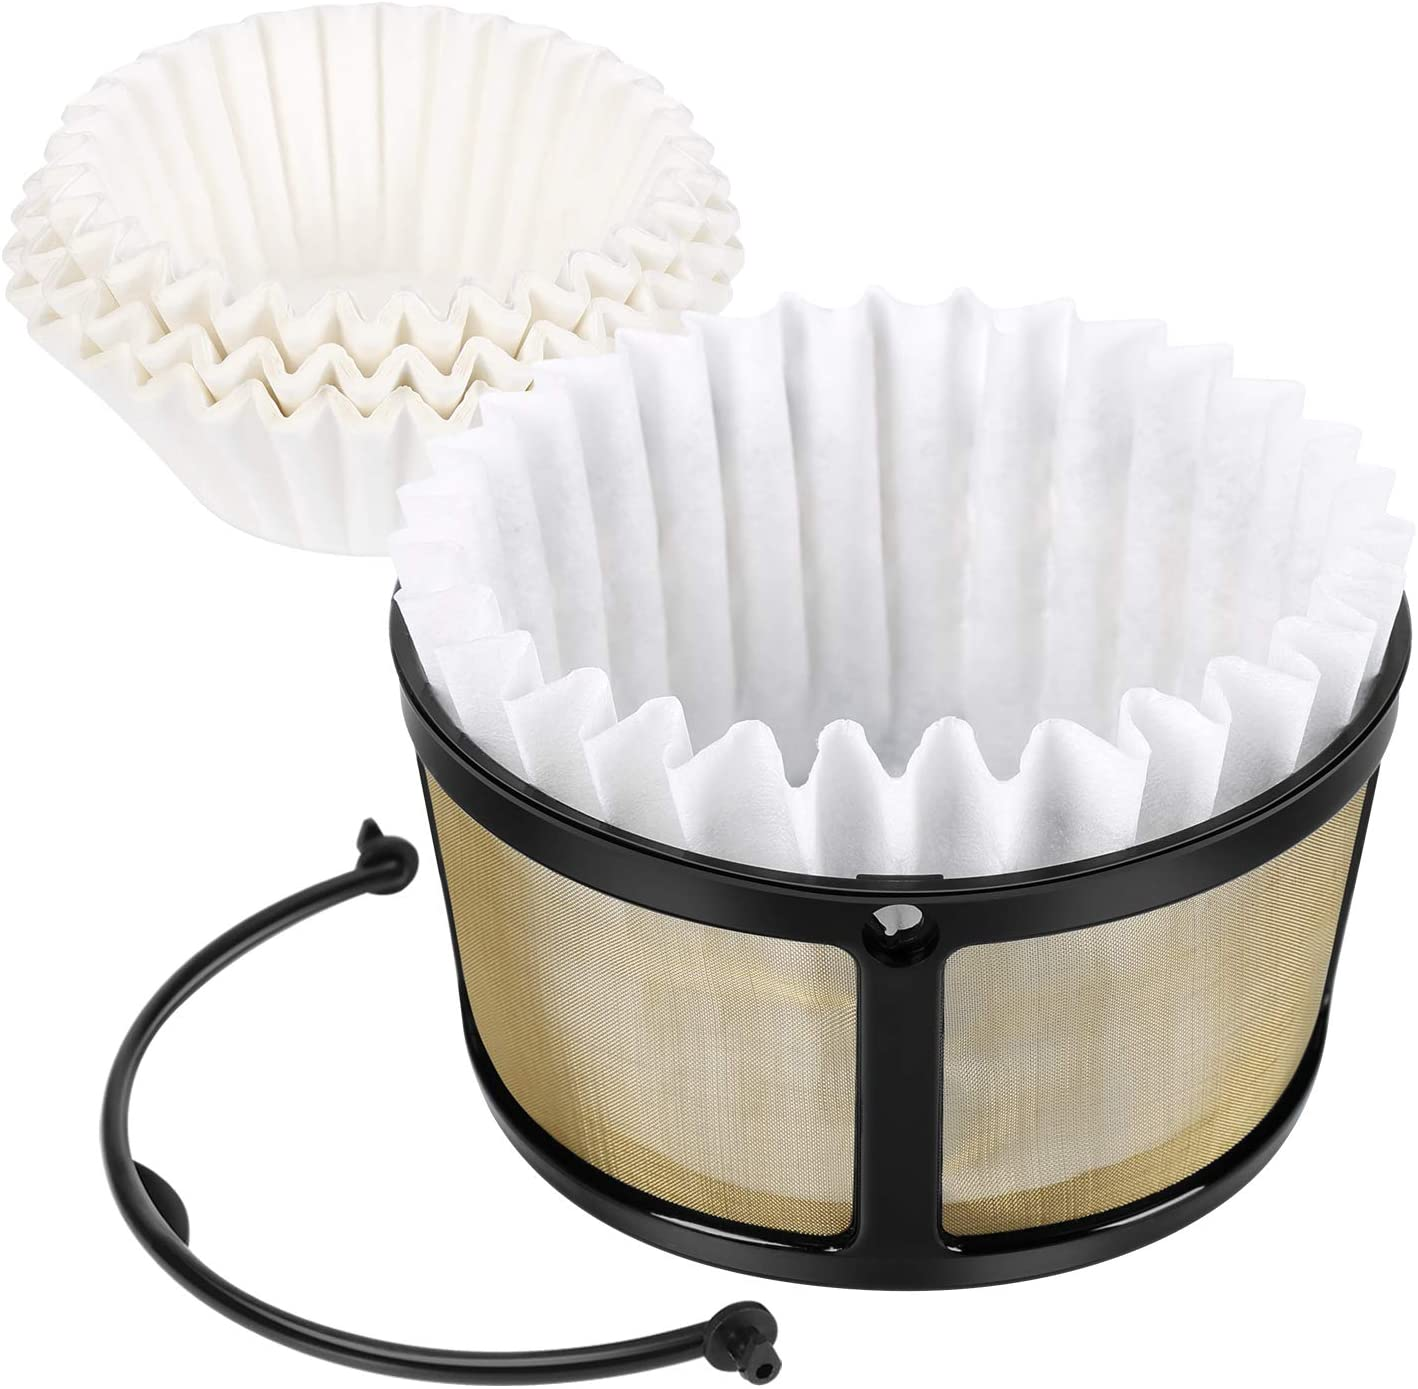 Pure-Brewing Reusable Mesh Coffee Filter Basket and 50 Filter Papers Fit for Keurig K-Duo Essentials and K-Duo Brewers Machine